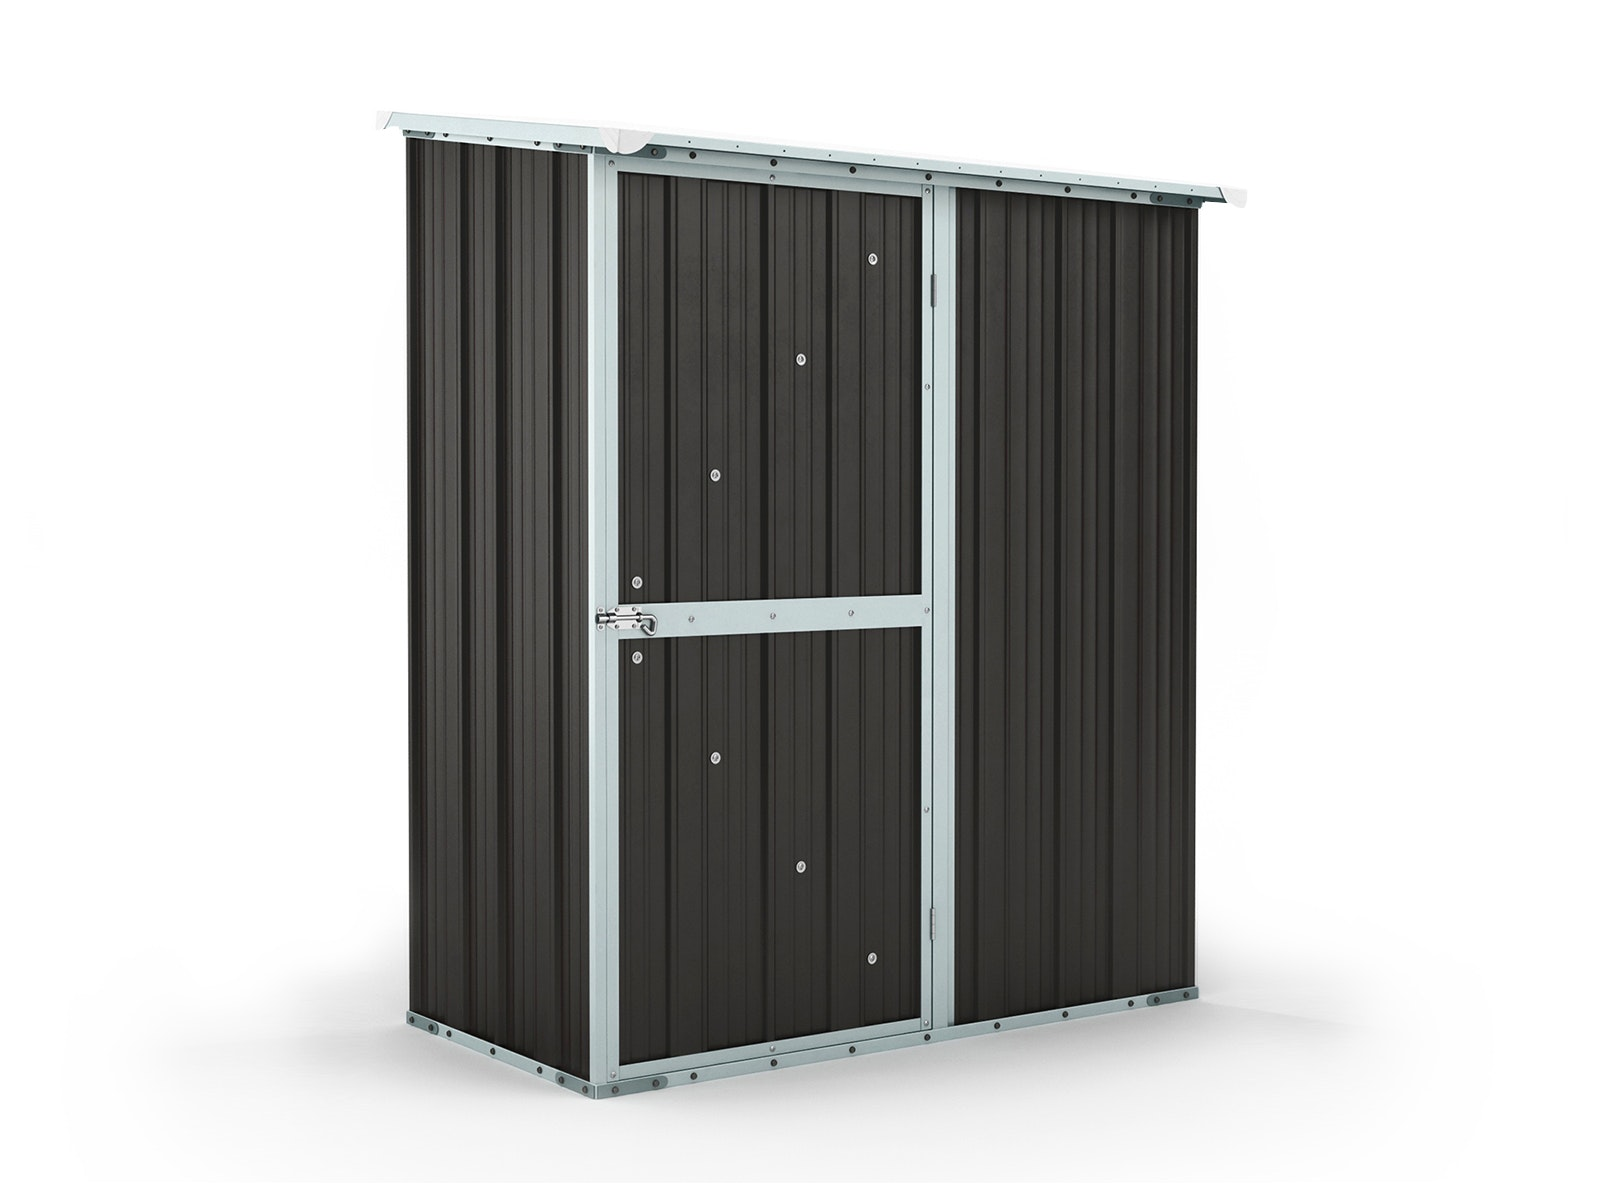 Garden Shed 1.55m x 0.79m x 1.92m Ironsand